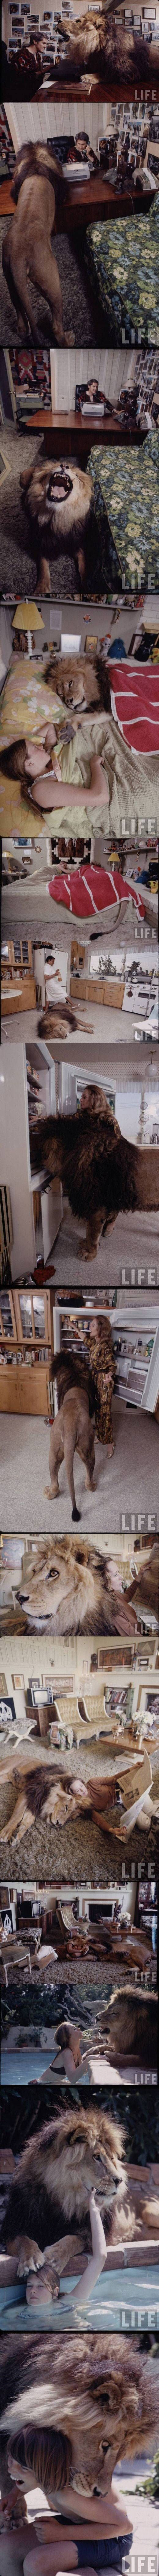 Awww I want a pet lion! My dog may object but thats o.k! =)